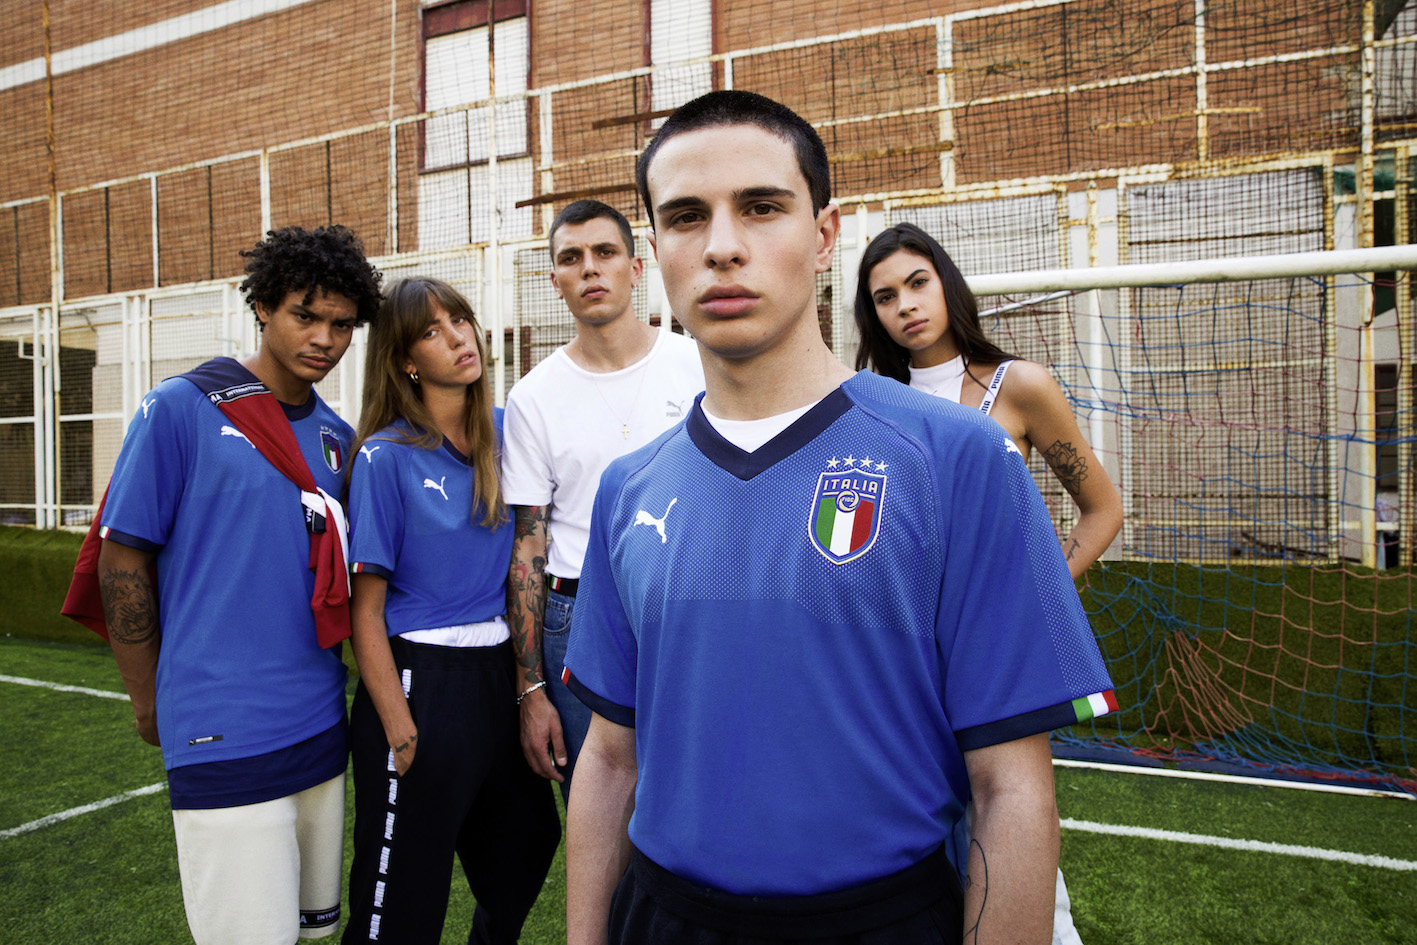 FIGC Home Kit_Group_02